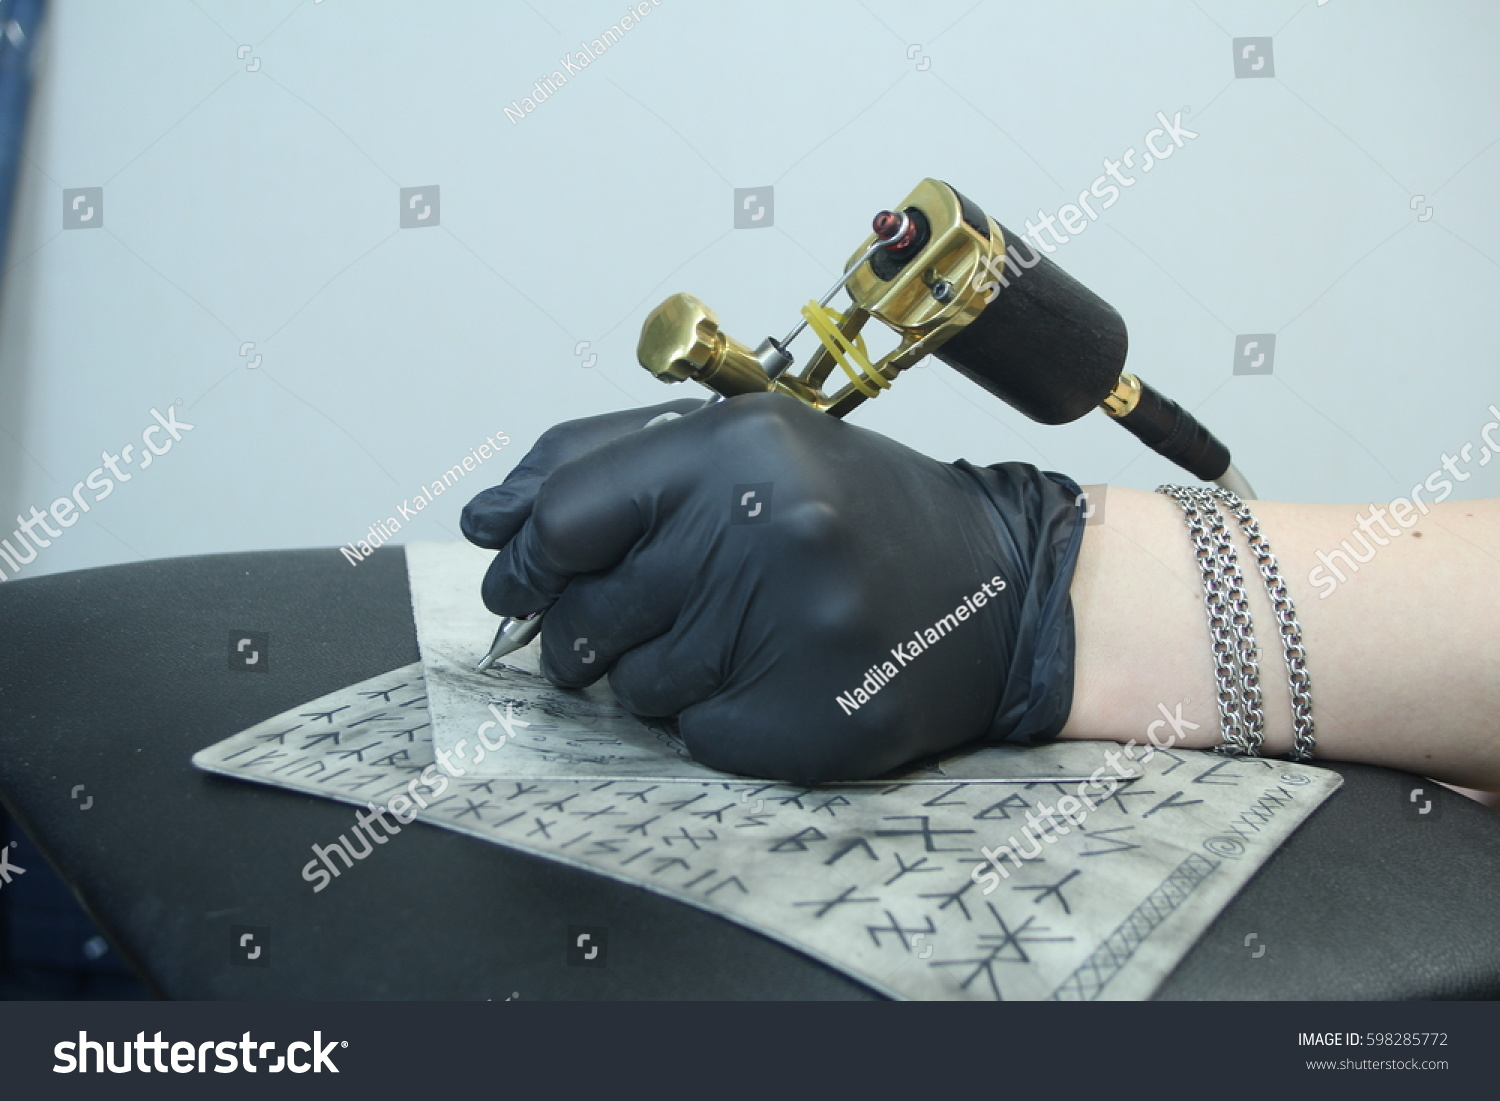 Hand tattoo artist holding tattoo machine stock photo for Process of tattooing